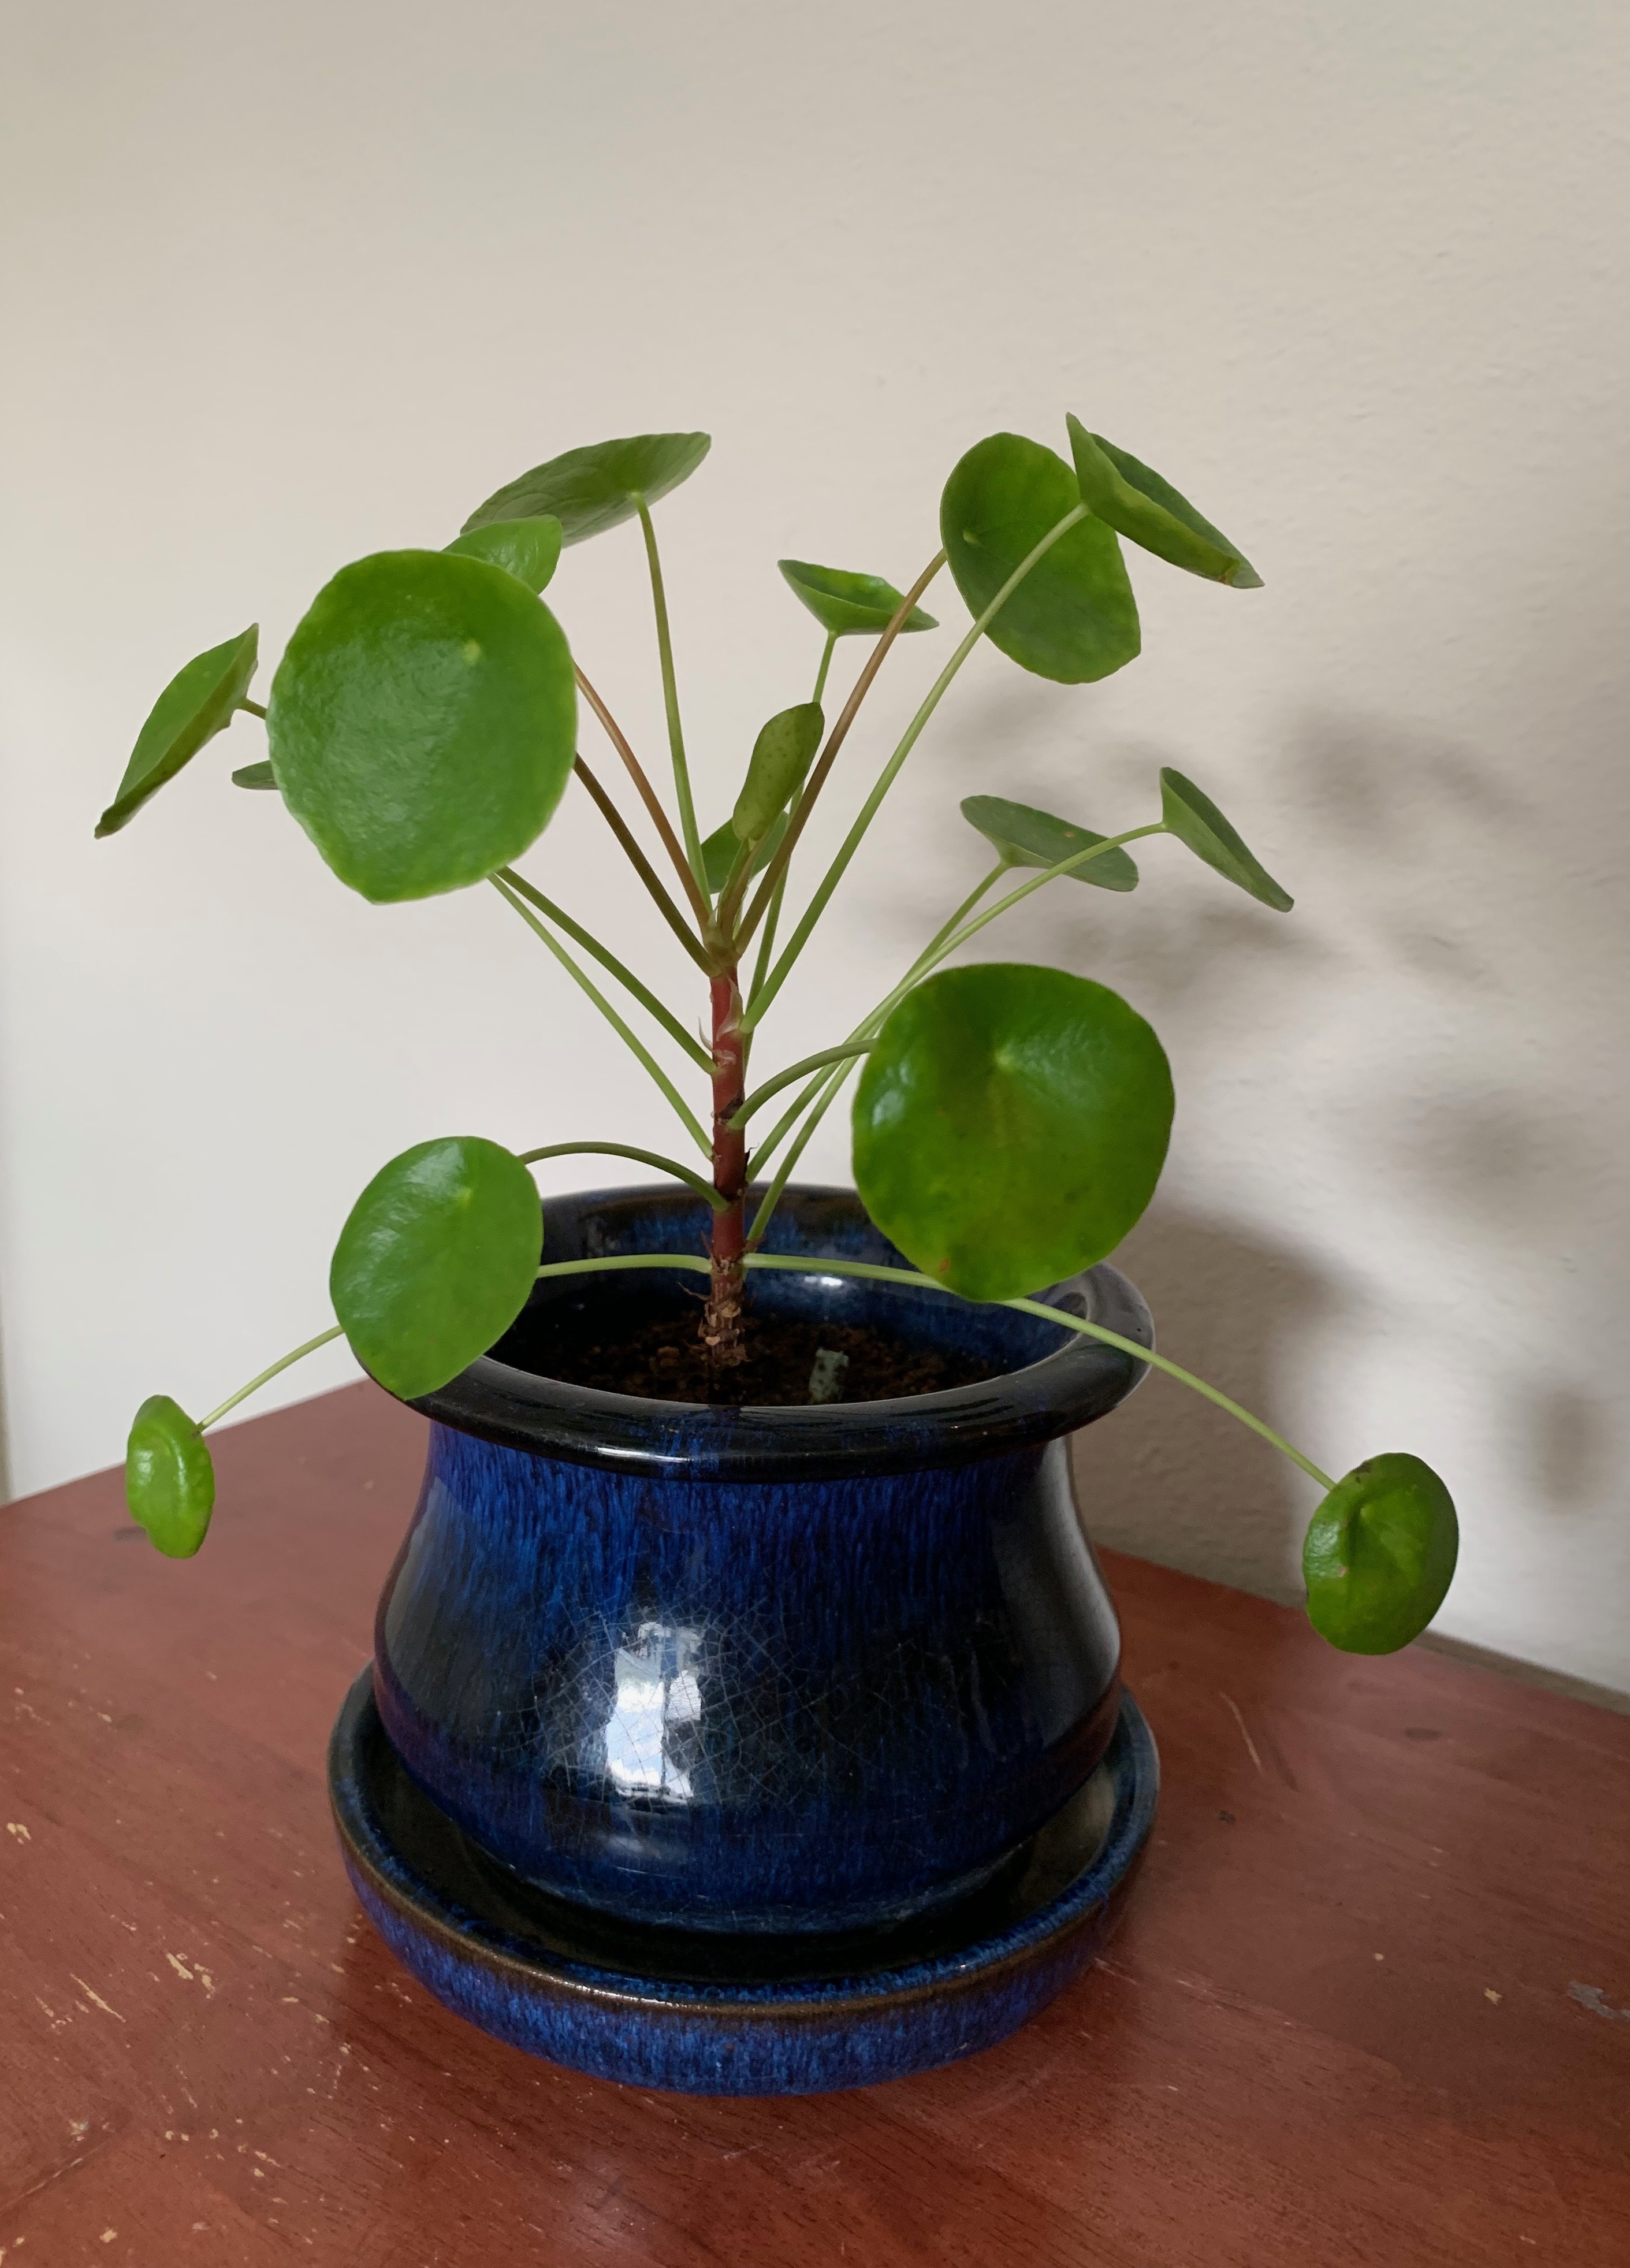 This is a pilea plant